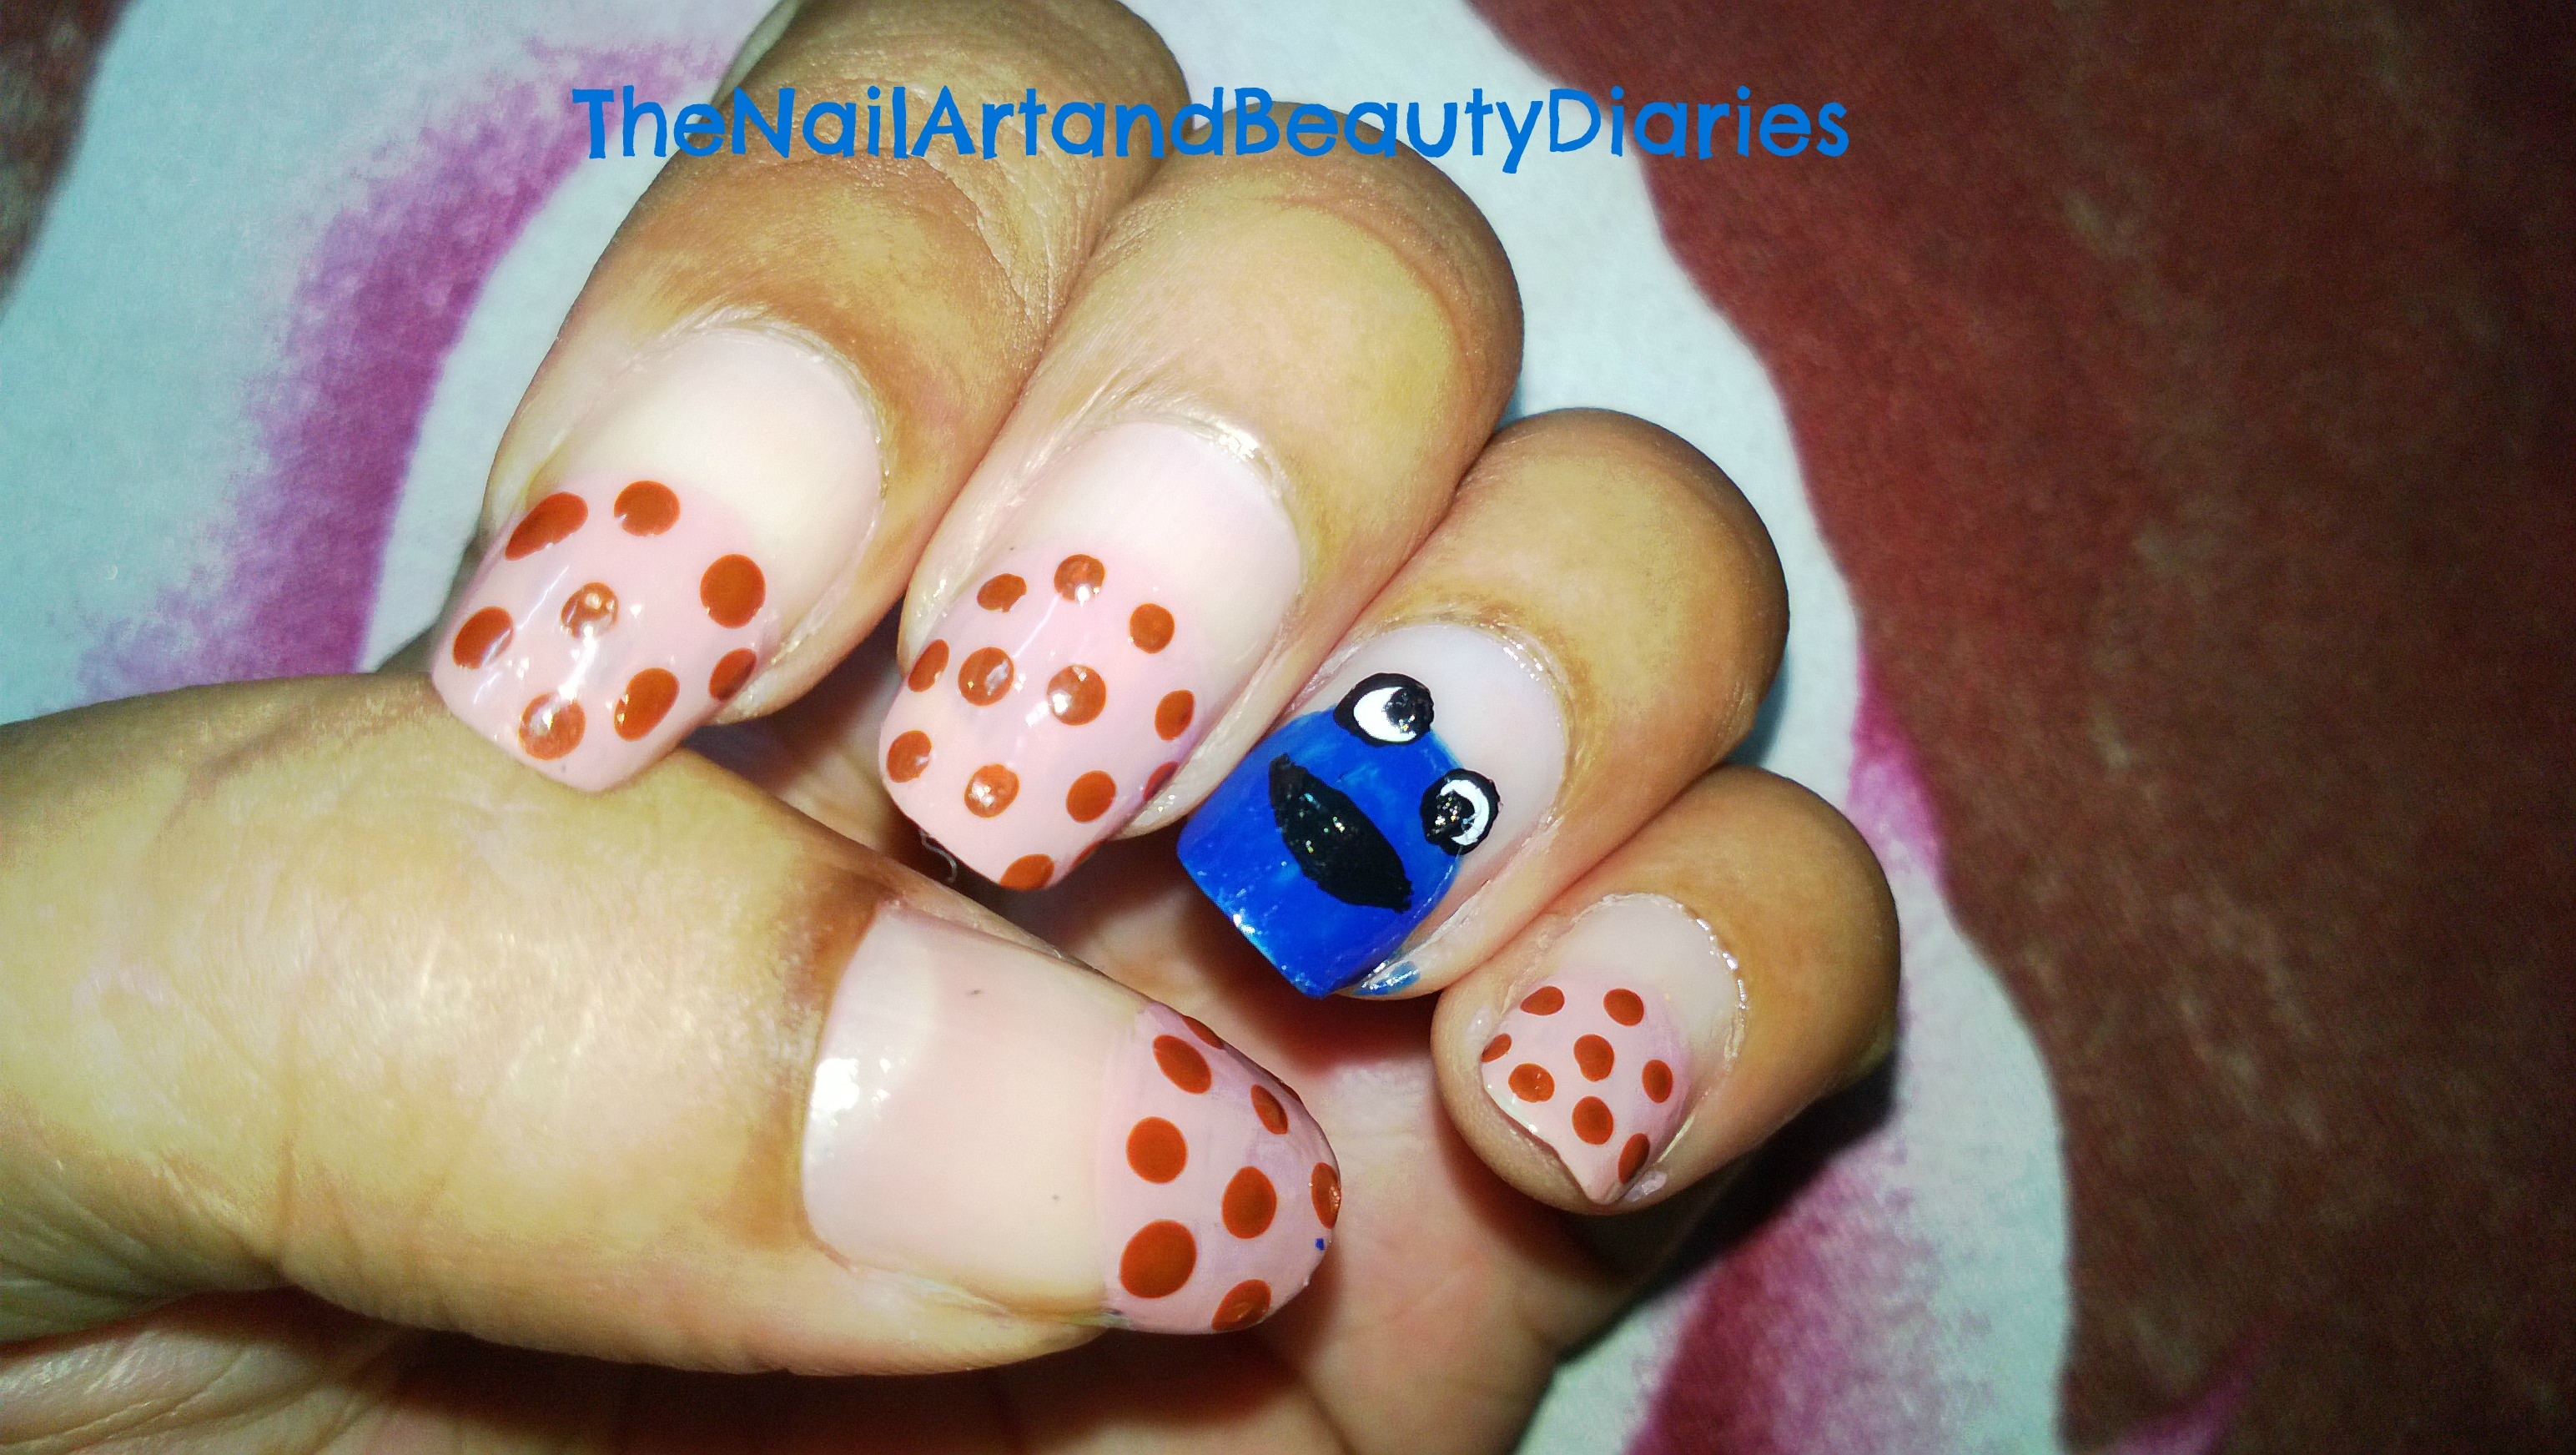 The Cookie Monster Nail Art The Nail Art And Beauty Diaries